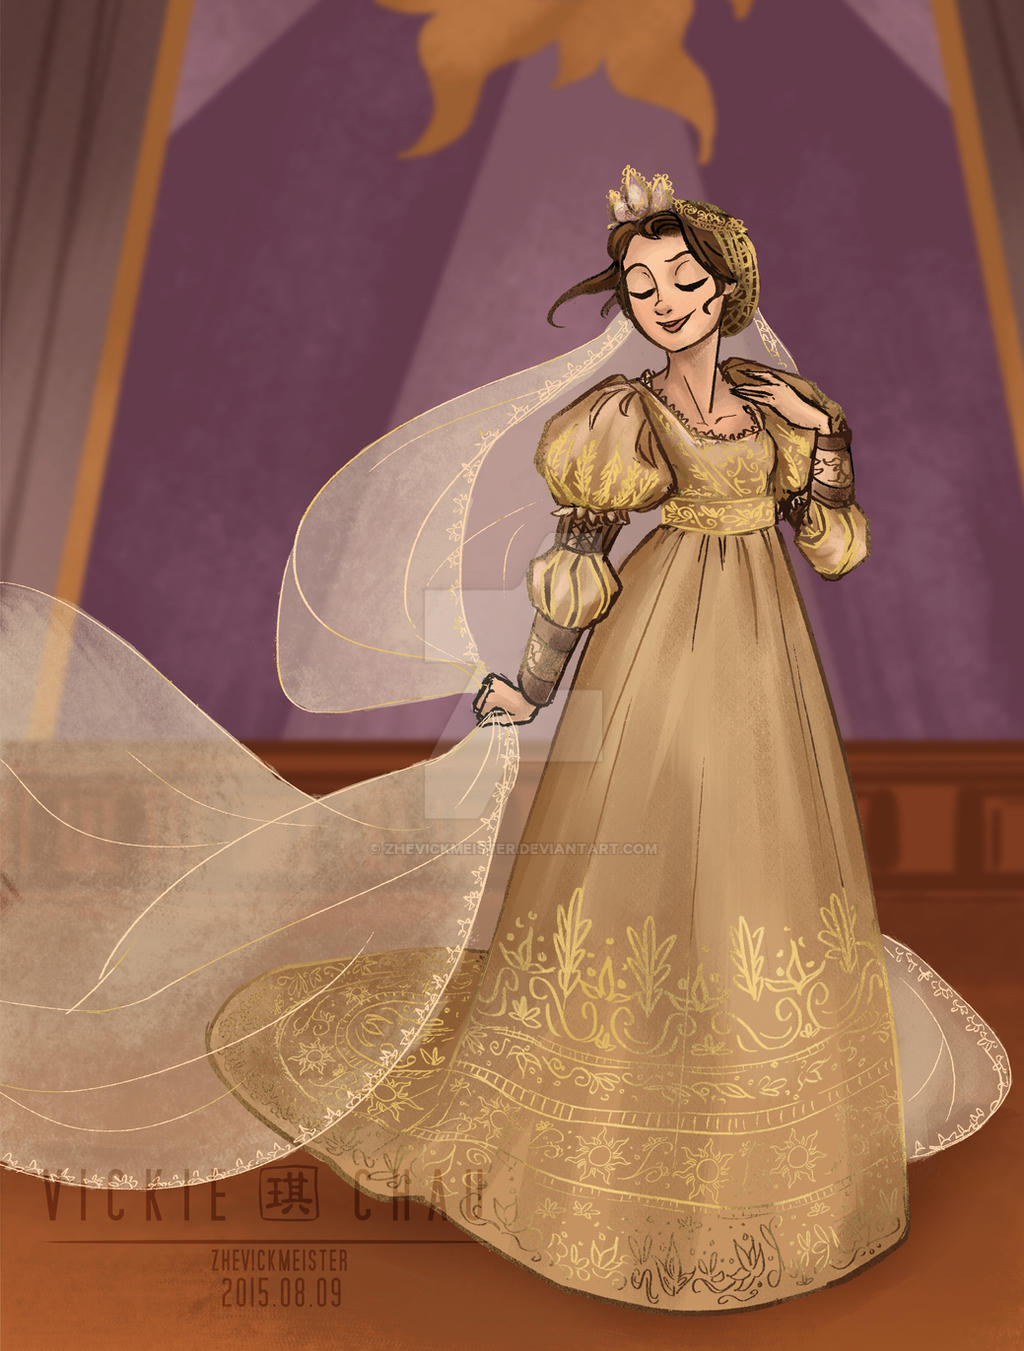 Wedding dress rapunzel by zhevickmeister on deviantart for Places to donate wedding dresses